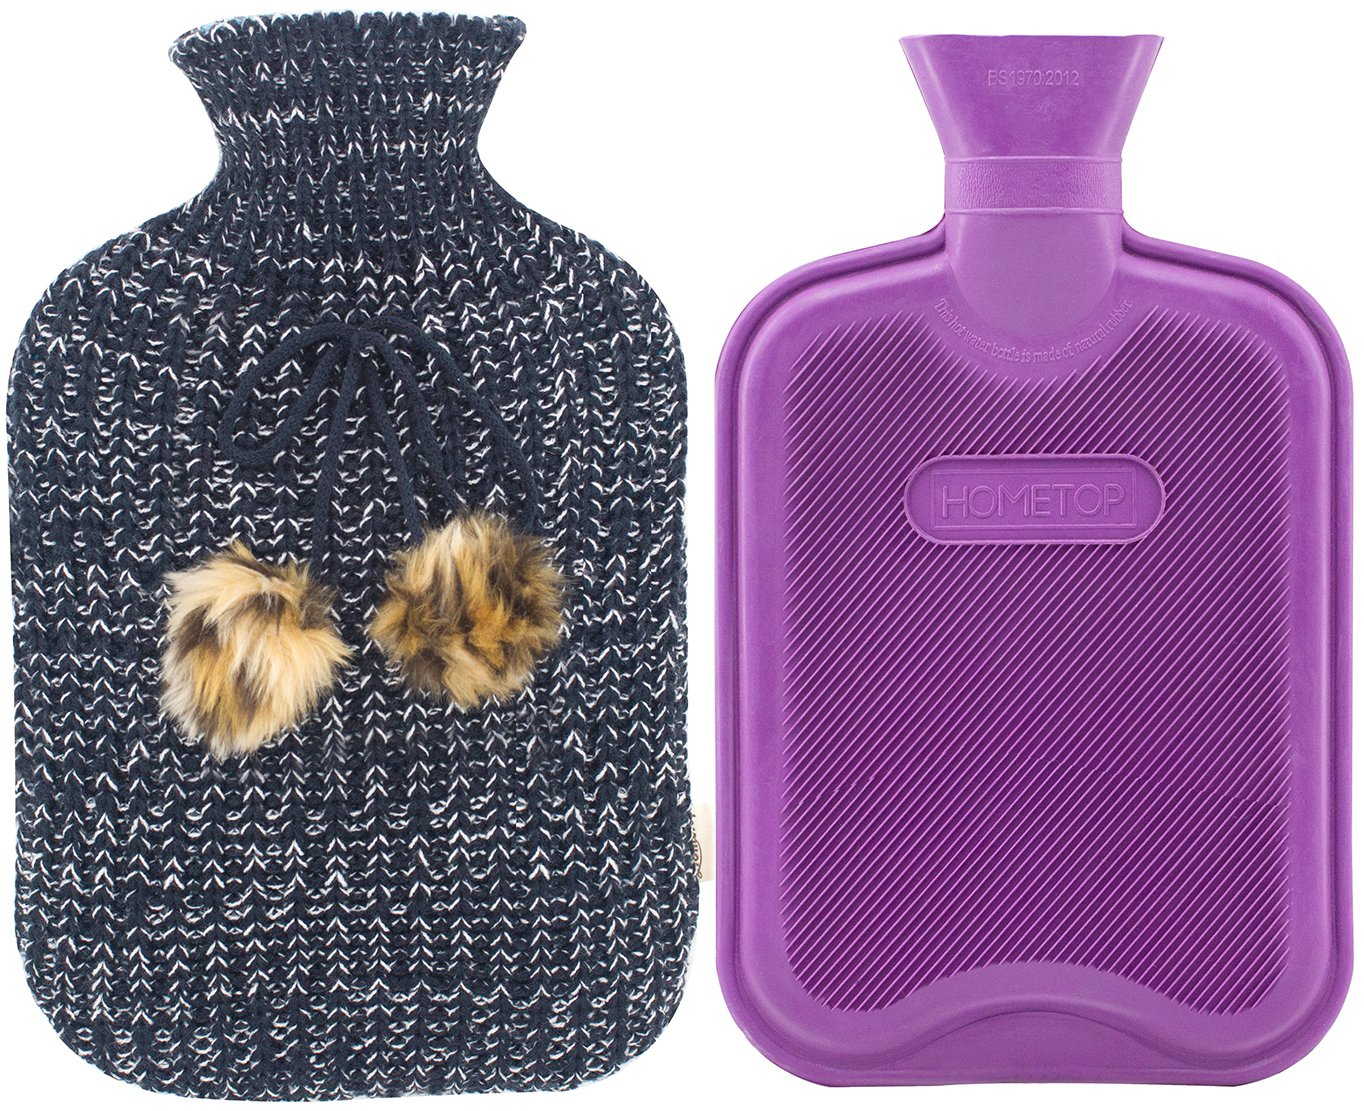 Premium Classic Rubber Hot Water Bottle and Blending Knit Cover with Pom Pom Decor, for Pain Relief and Comfort, 2 Liter by HomeTop (Image #1)